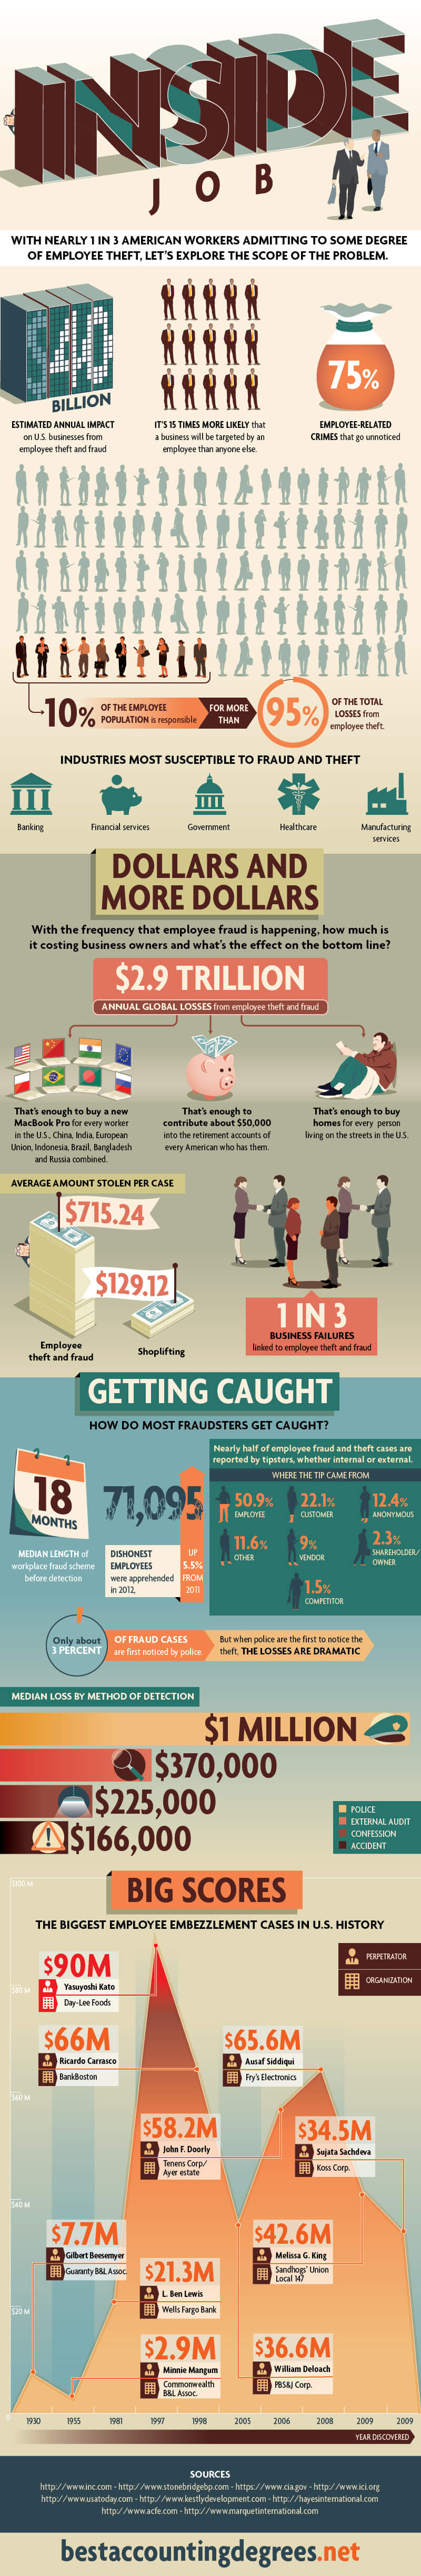 Employee-Theft-infographic